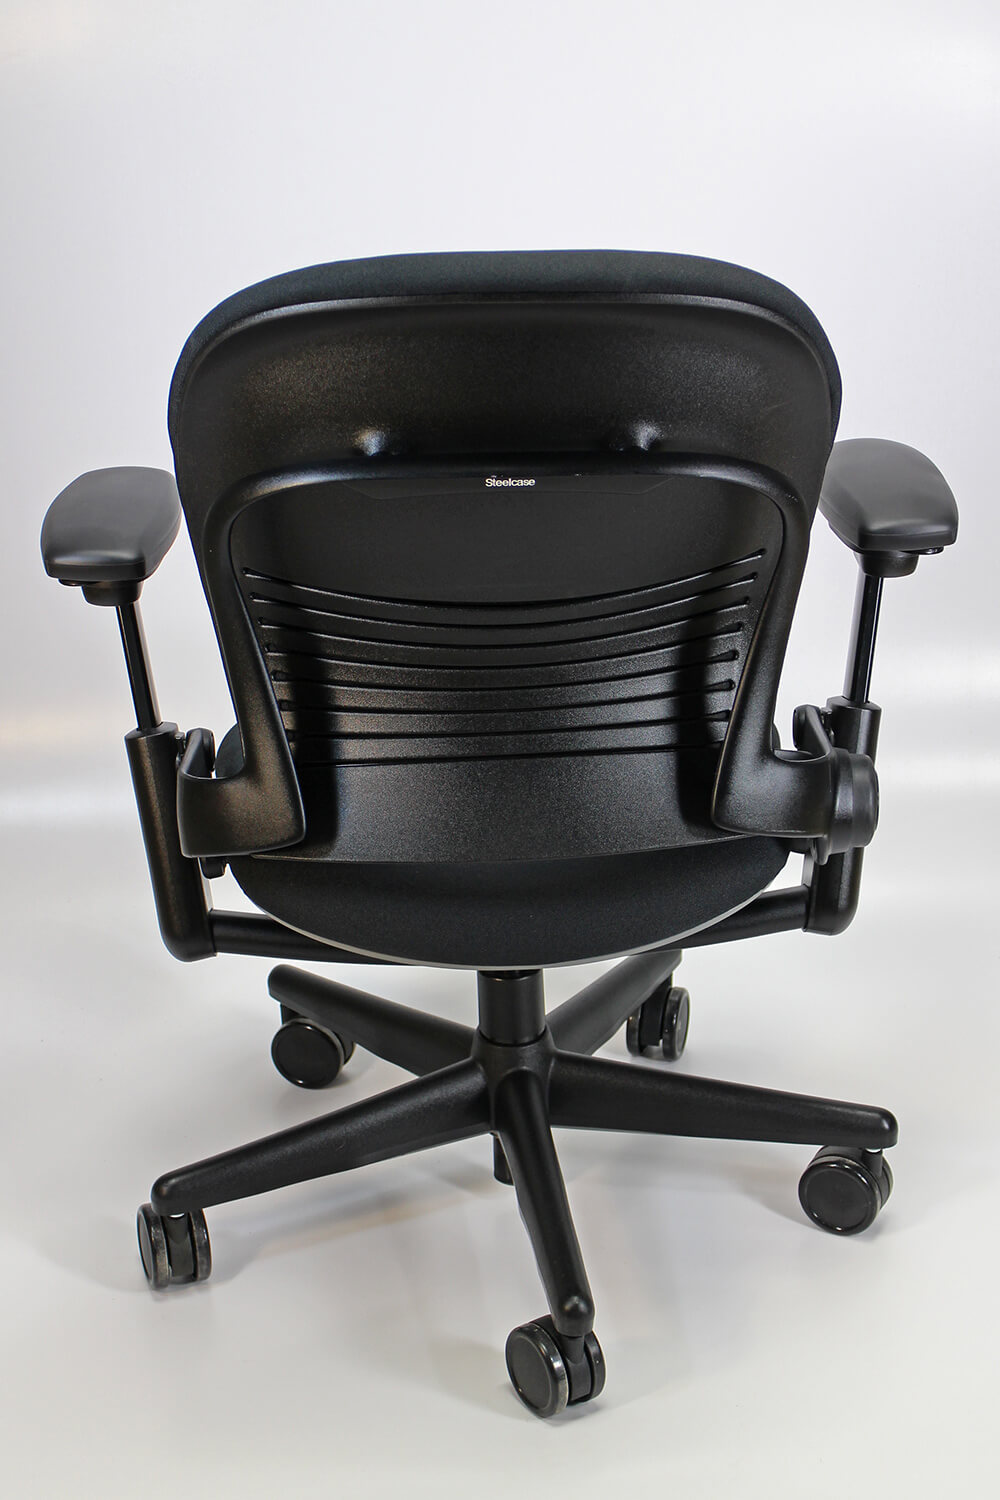 Steelcase leap v1 back view